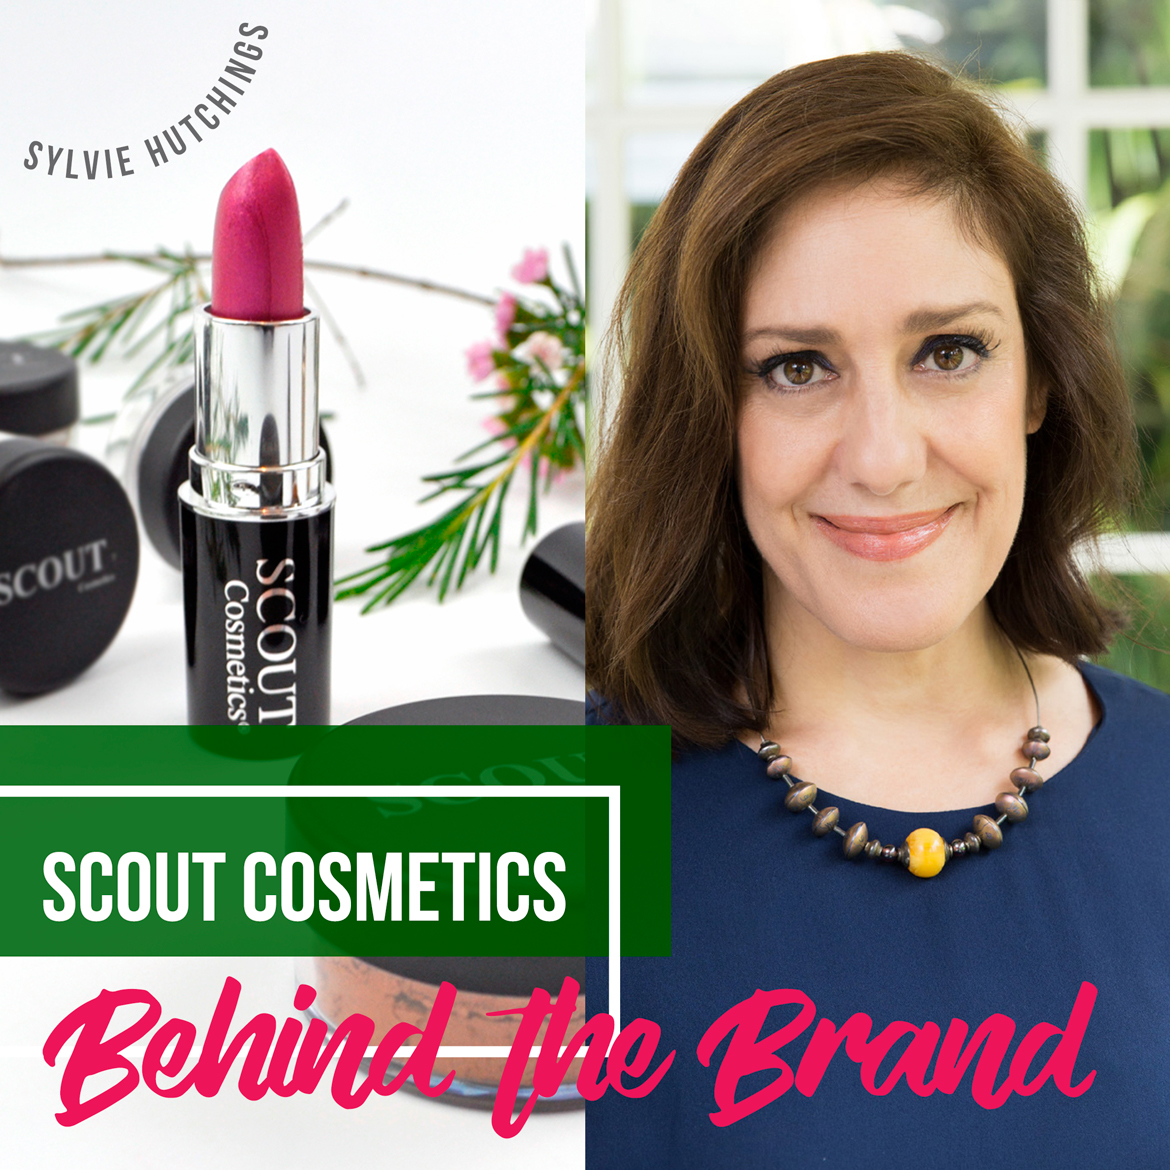 Scout Cosmetics Sylvie Hutchings